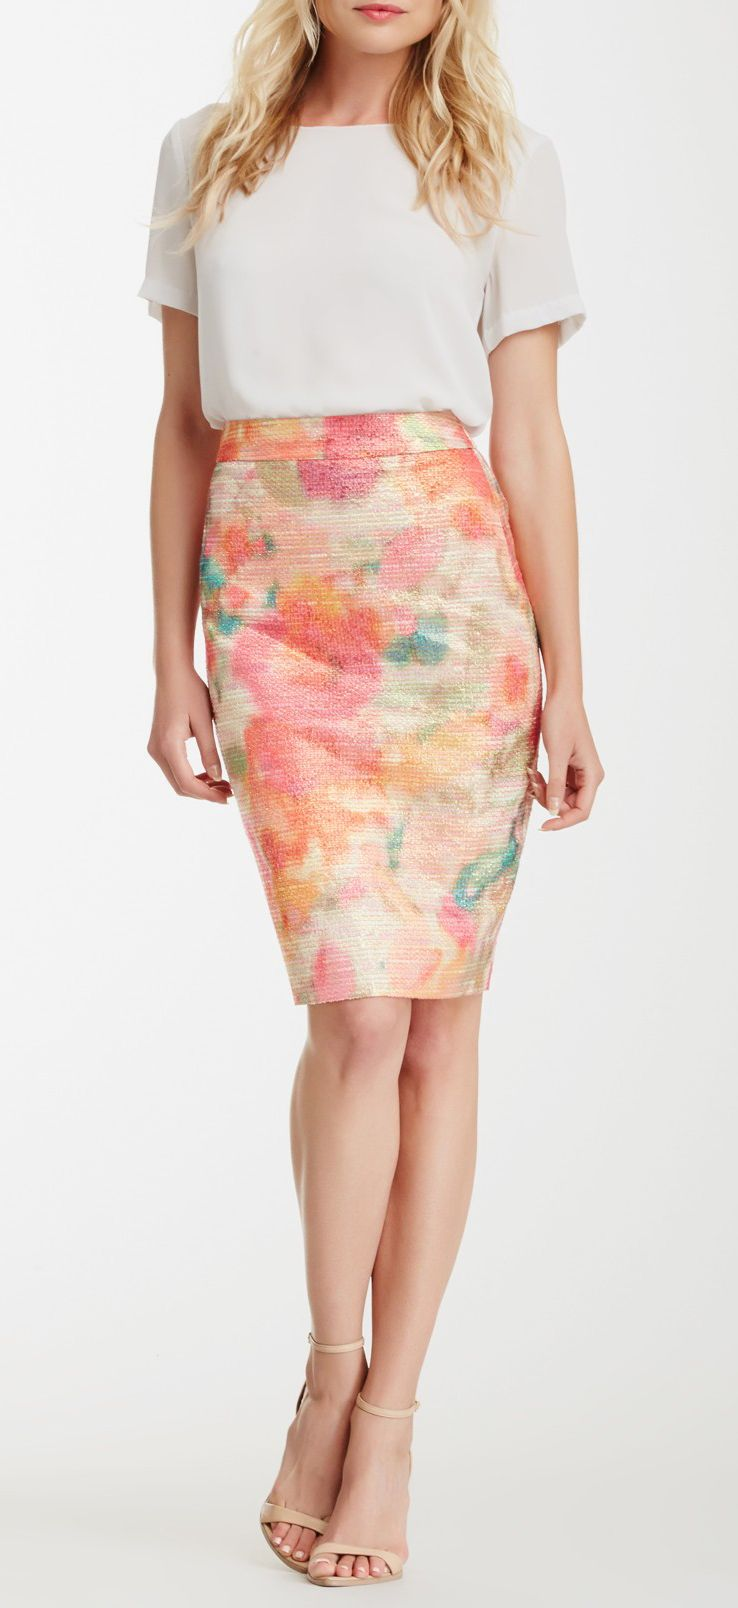 giverny floral metallic tweed pencil skirt